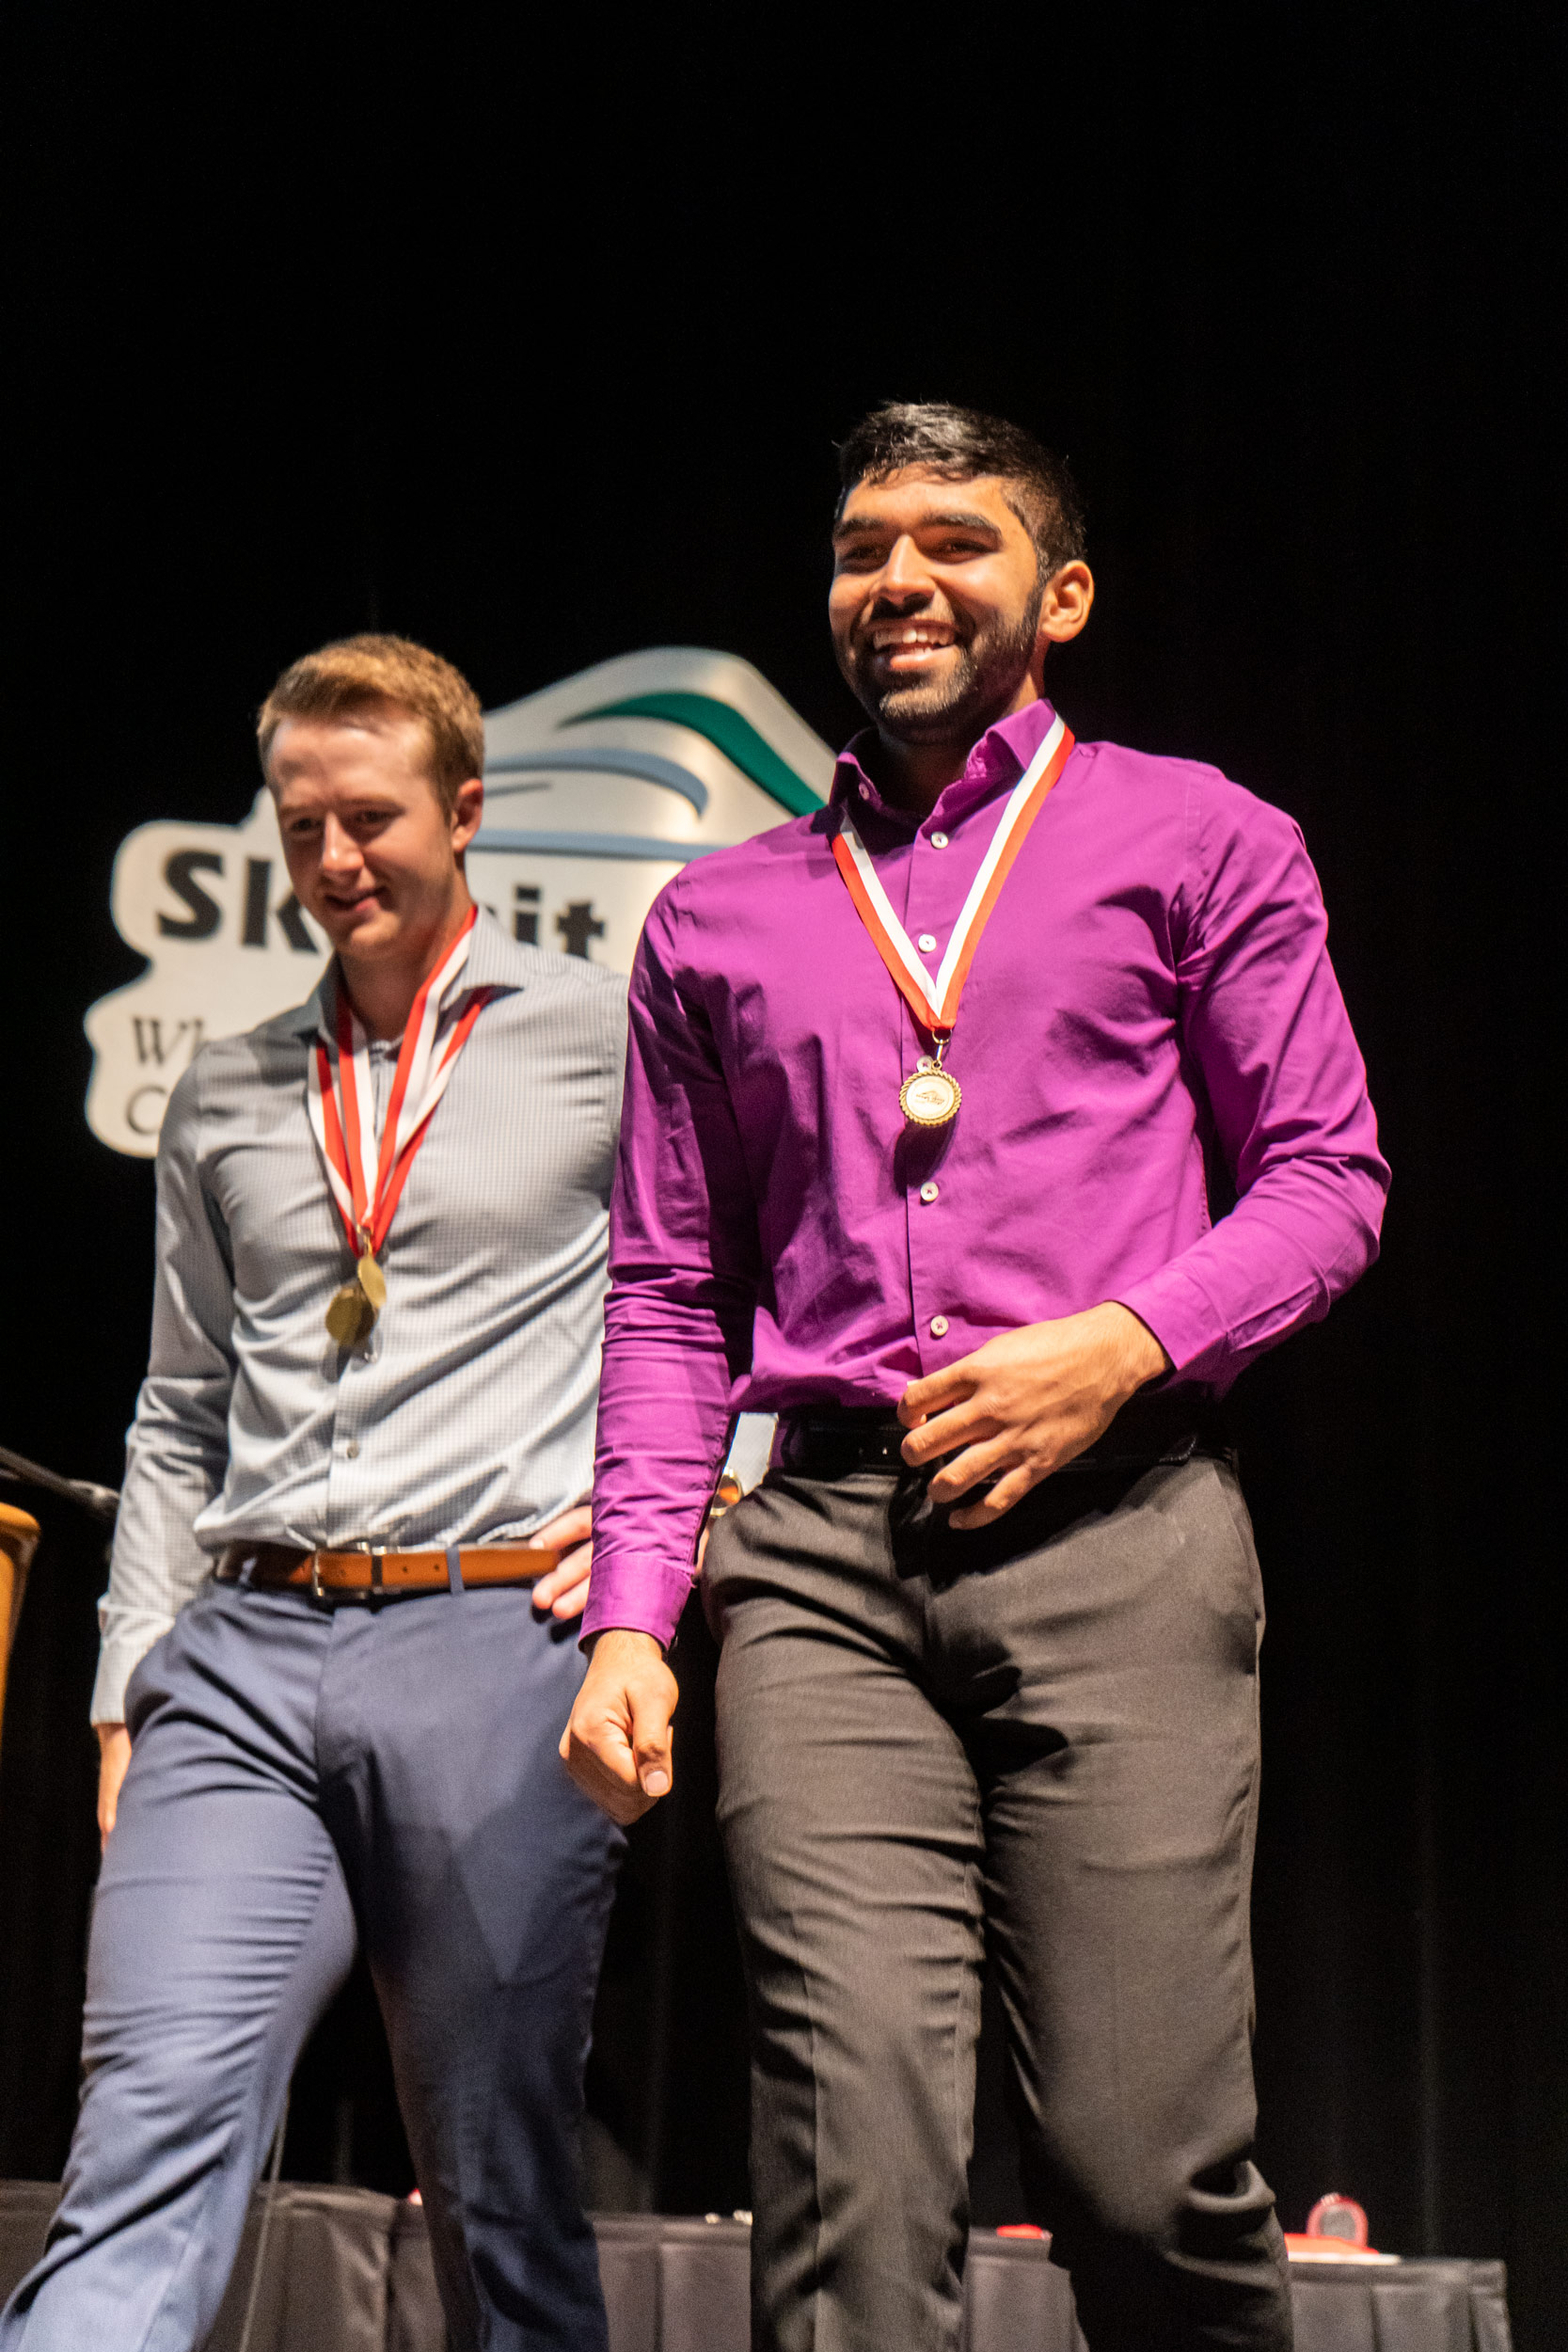 img_mv-honors_daniel-on-stage_7369_1667x25